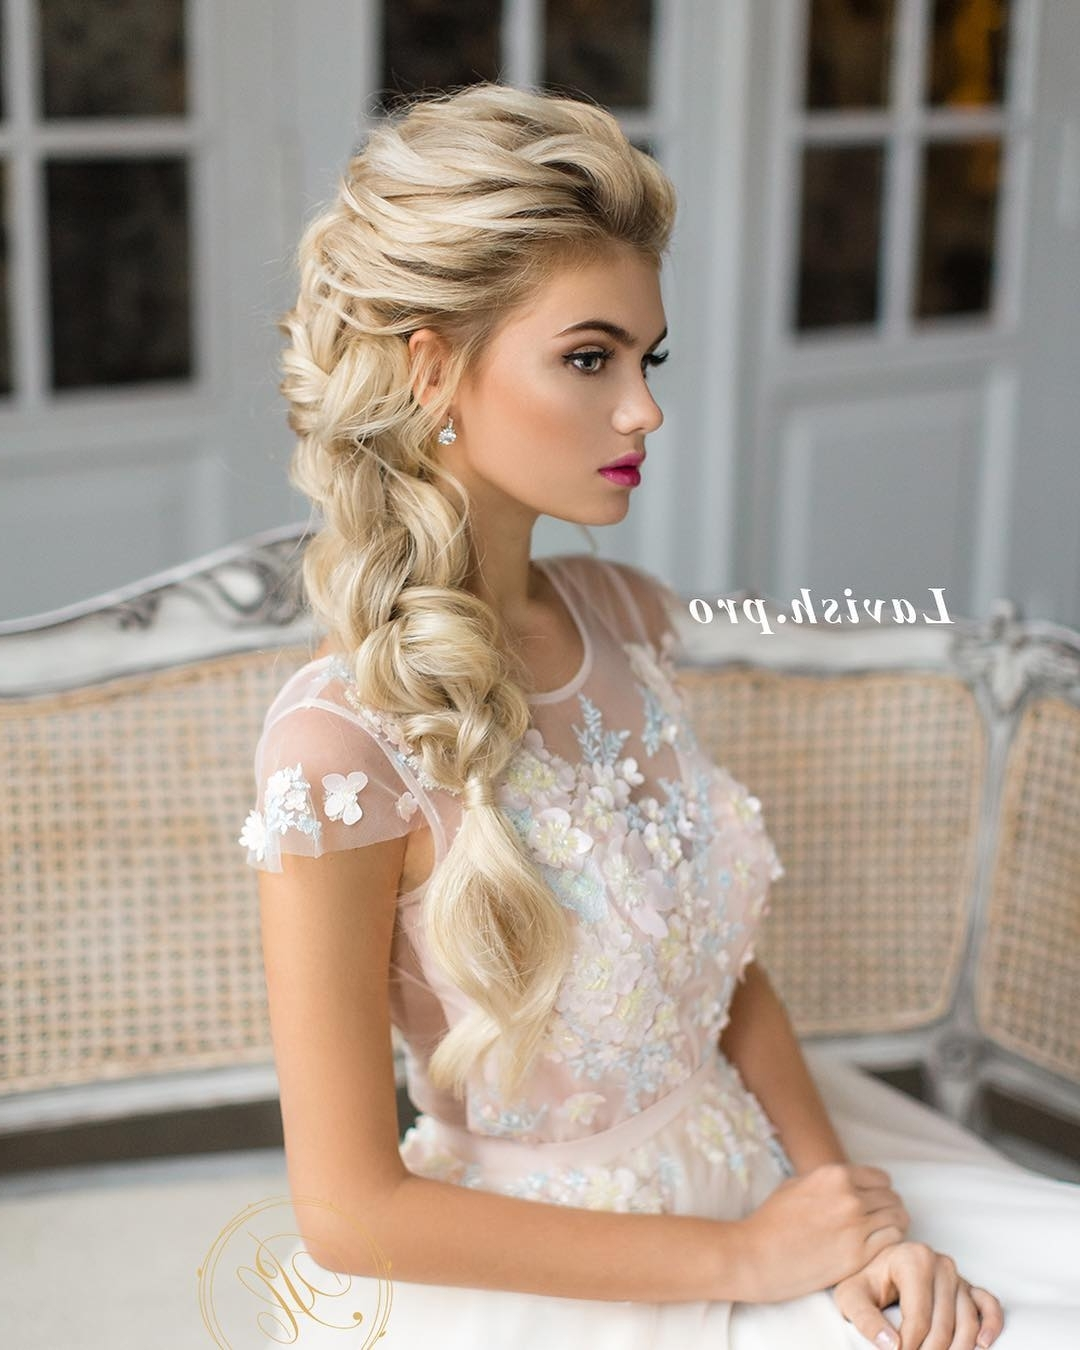 10 Lavish Wedding Hairstyles For Long Hair – Wedding Hairstyle Ideas Pertaining To Well Liked Wedding Hairstyles For Medium Length With Blonde Hair (View 1 of 15)